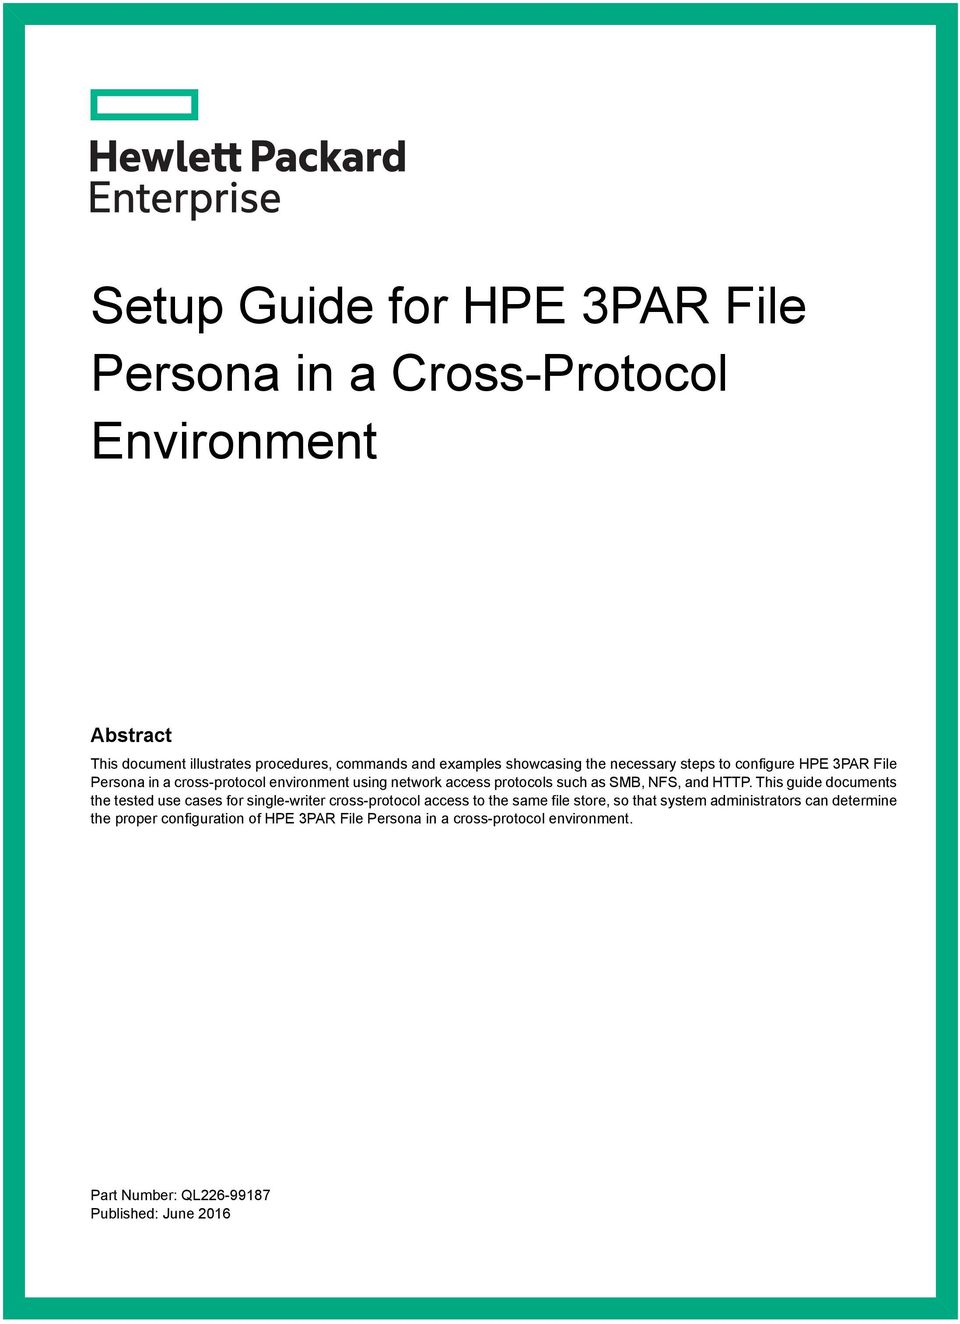 Setup Guide for HPE 3PAR File Persona in a Cross-Protocol